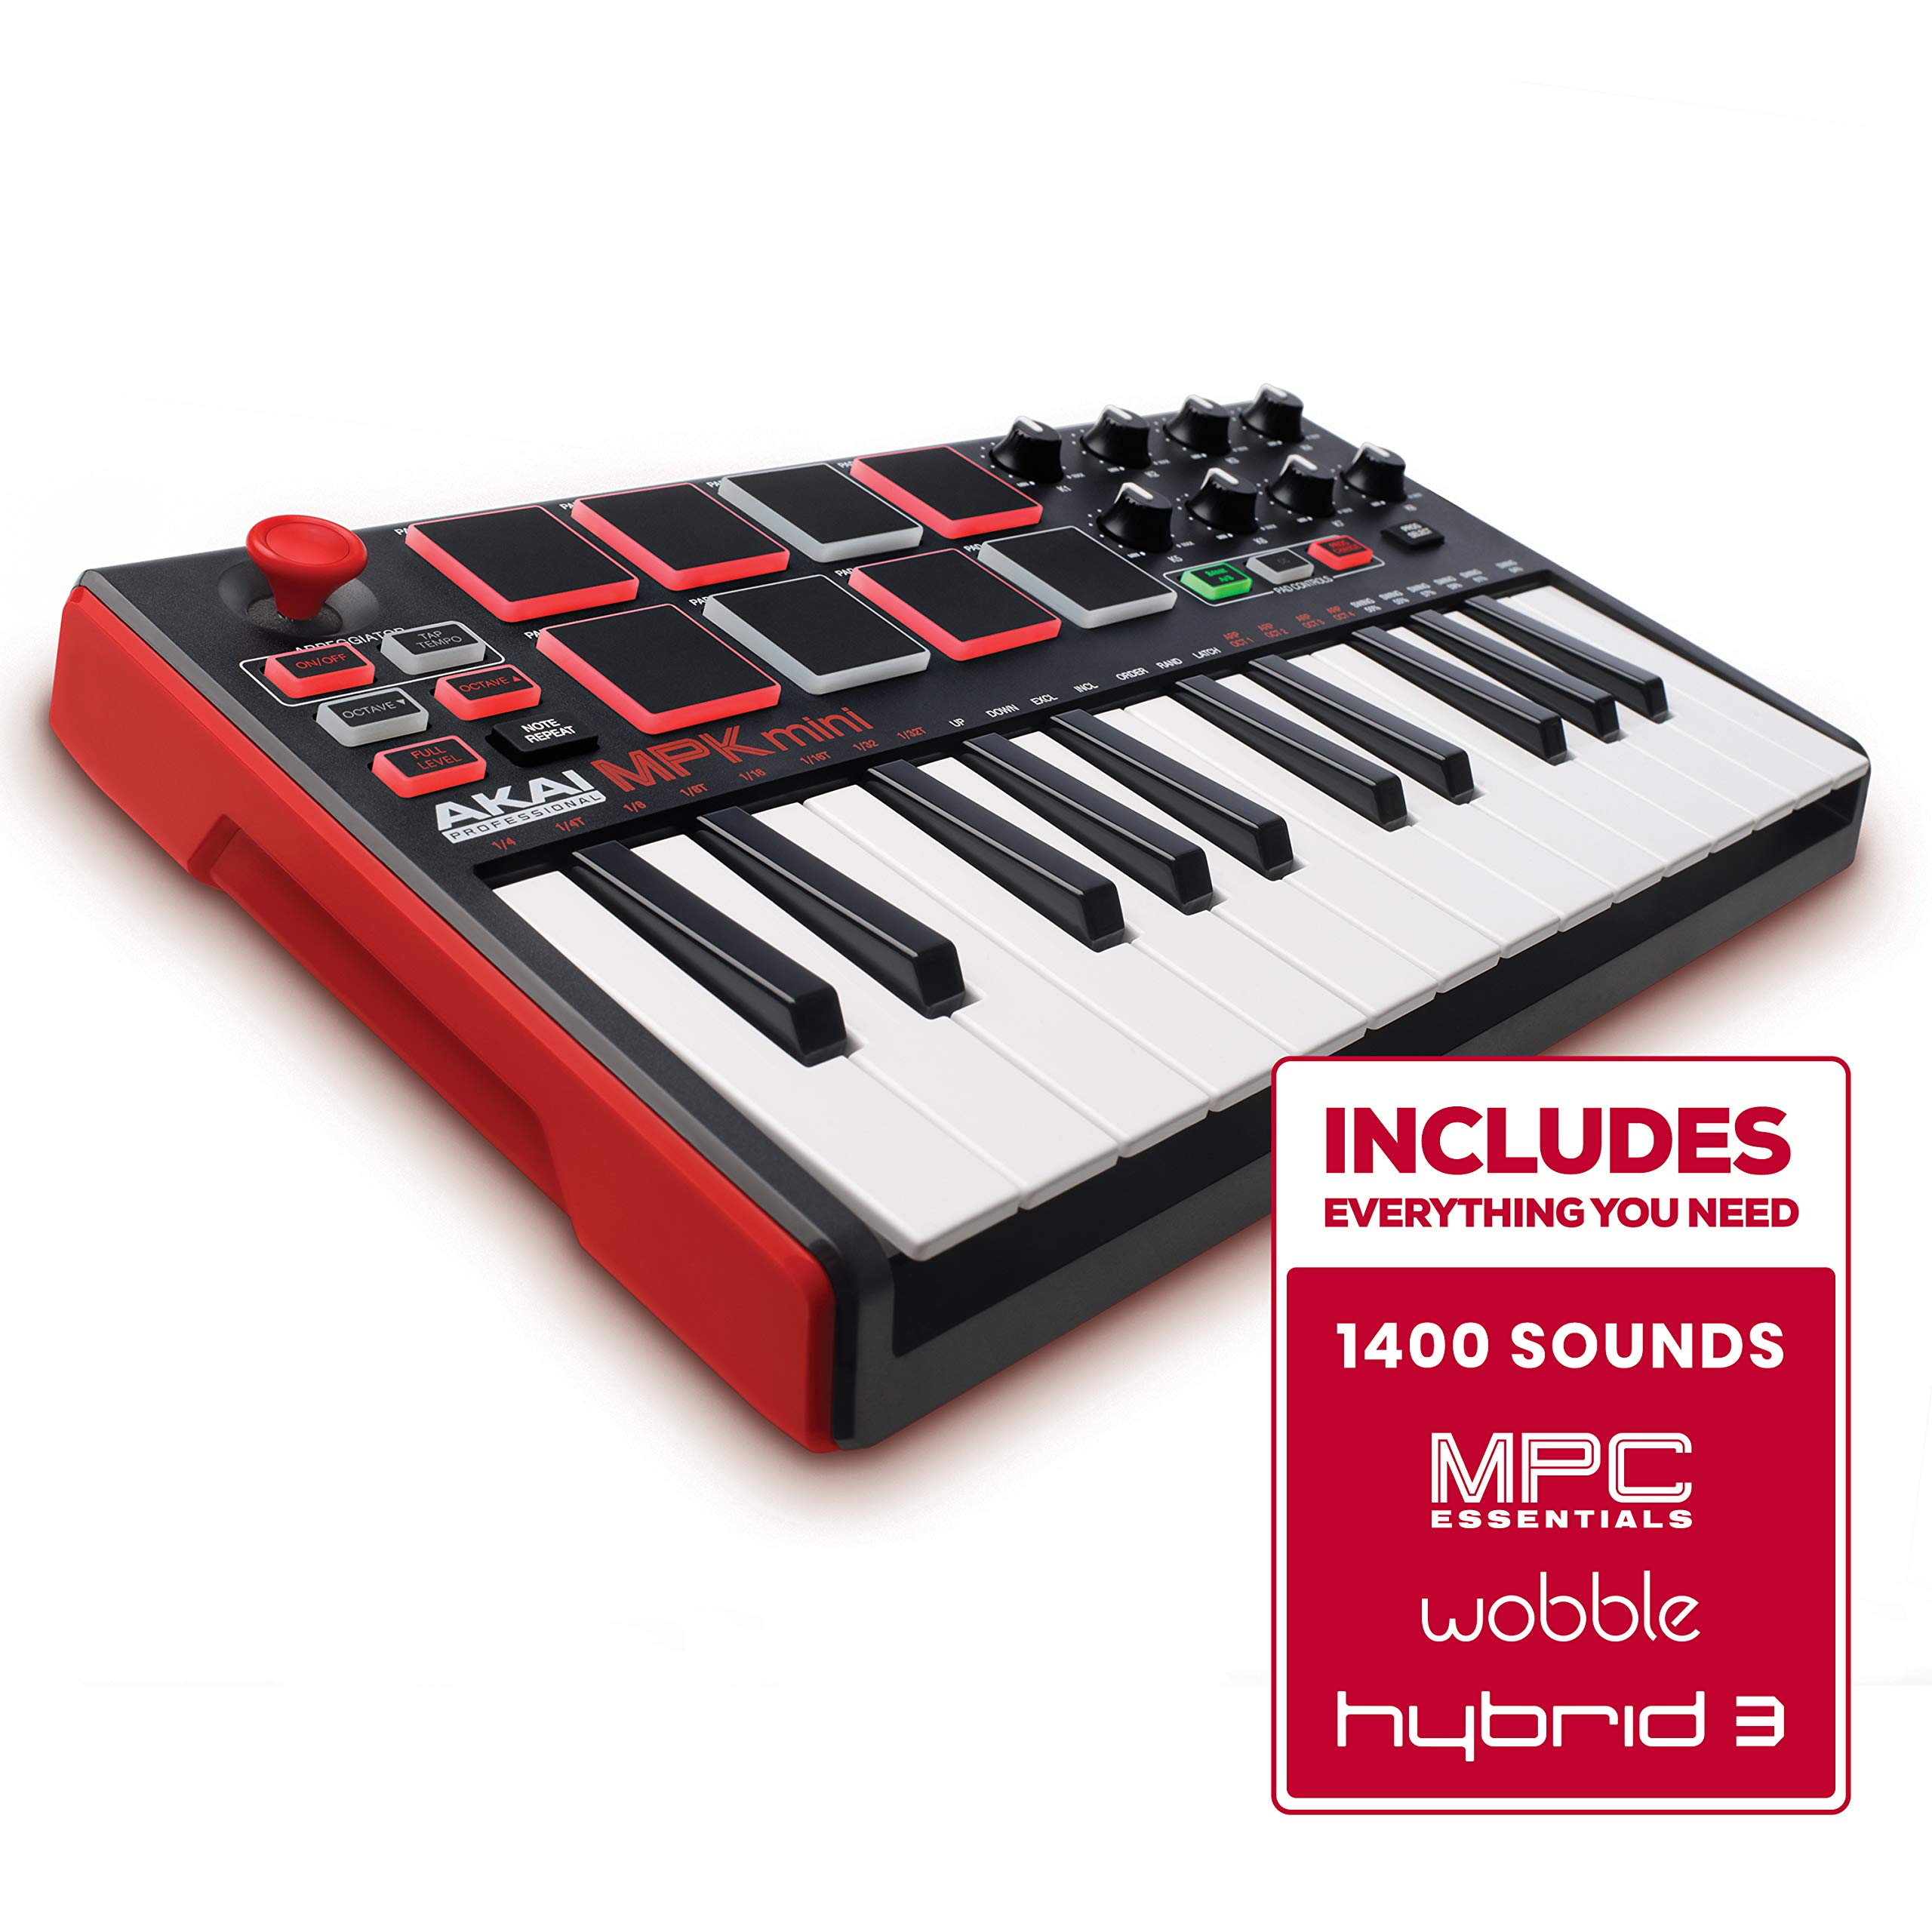 Akai Professional MPK MINI MKII 25-Key Ultra-Portable USB MIDI Keyboard and Pad Controller with Joystick product image